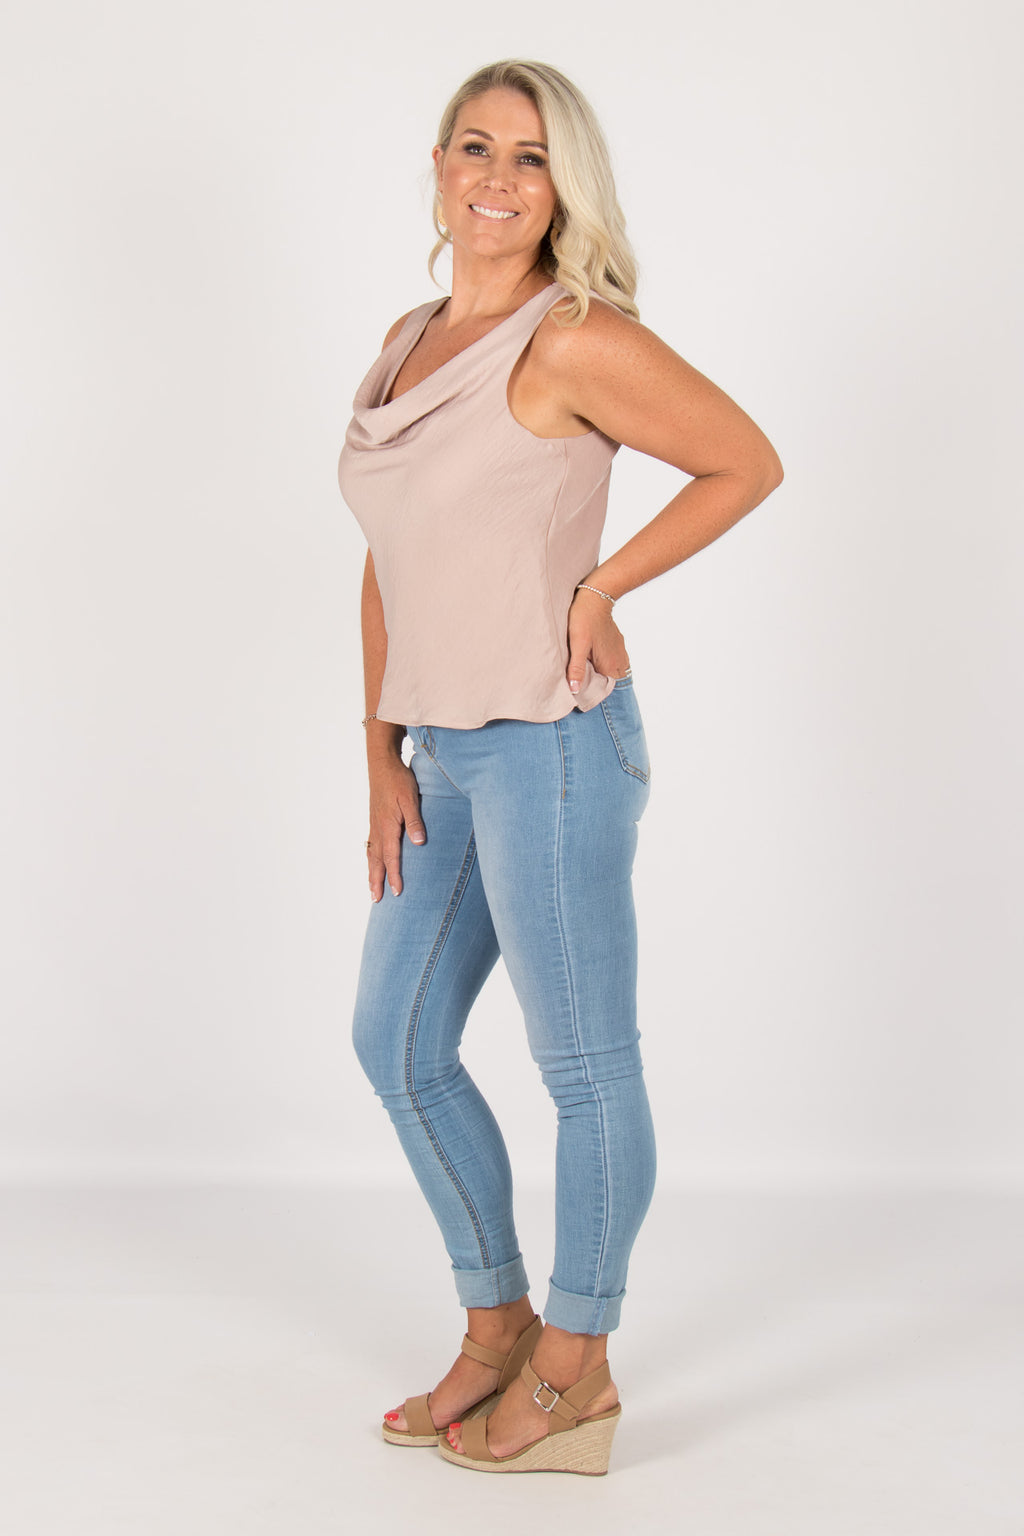 Leila Cowl Neck Top in Oyster